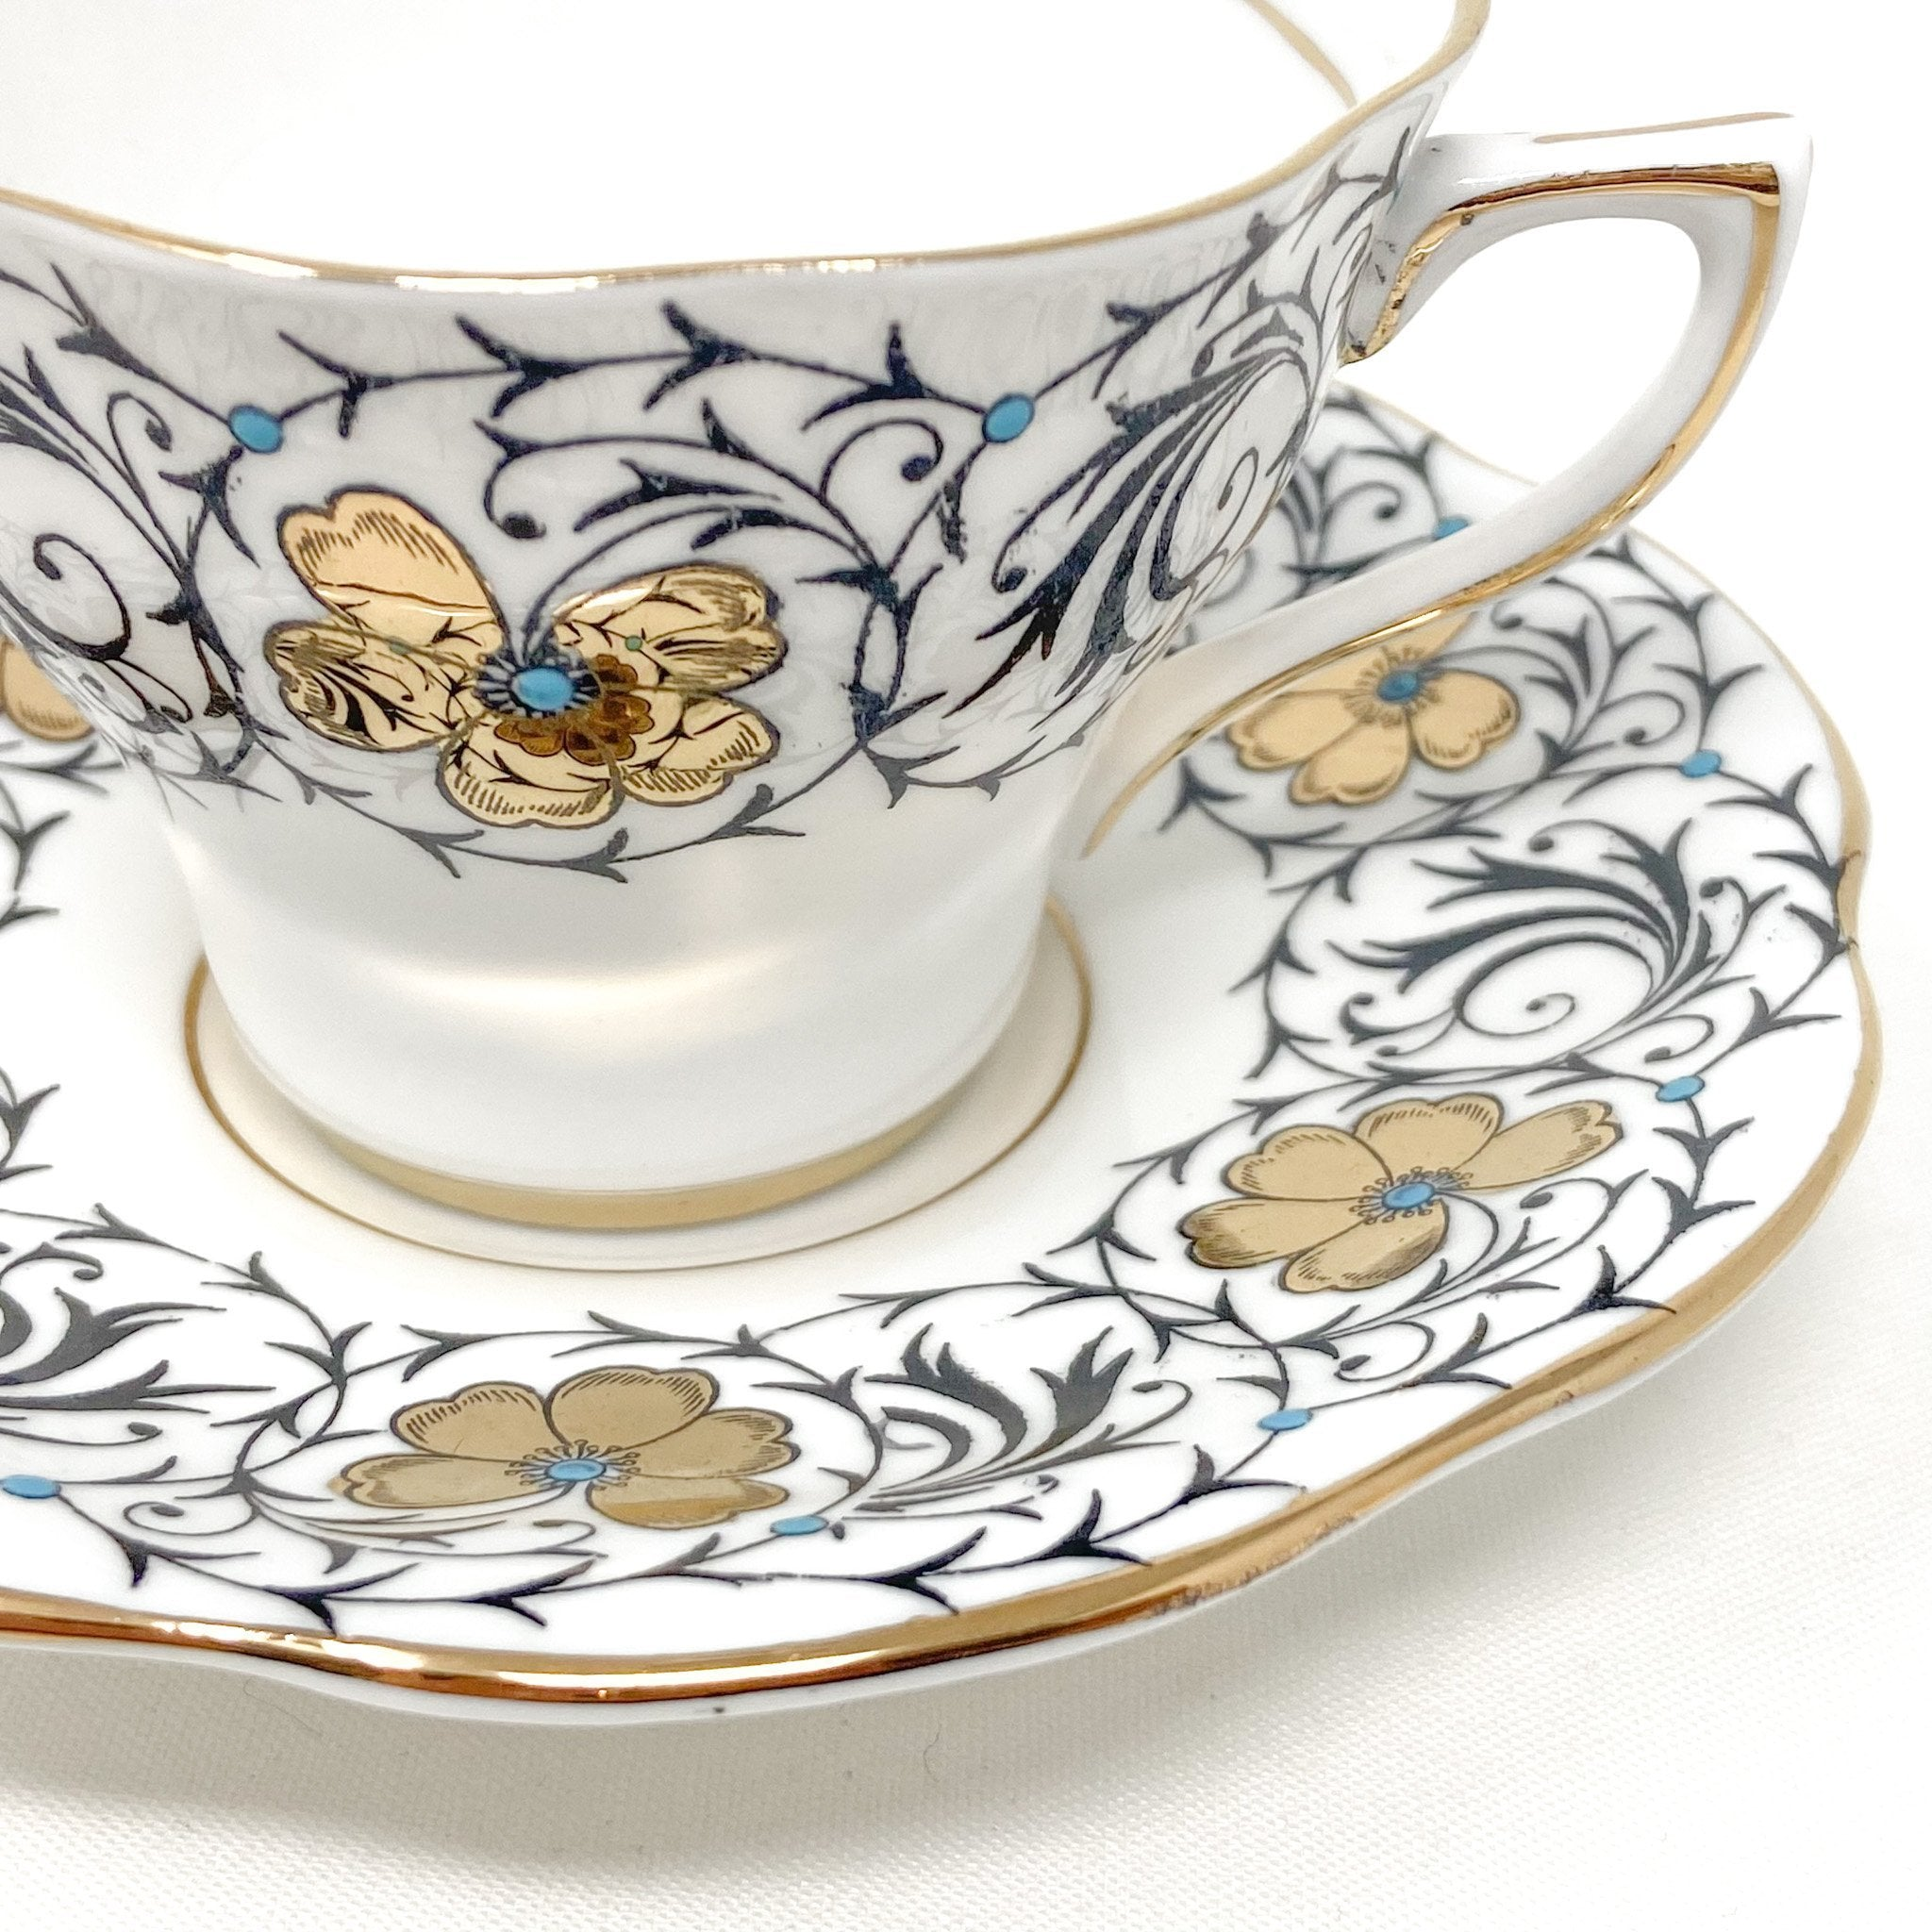 Rosina Bramble | Teacup & Saucer | Rosina - The Brooklyn Teacup